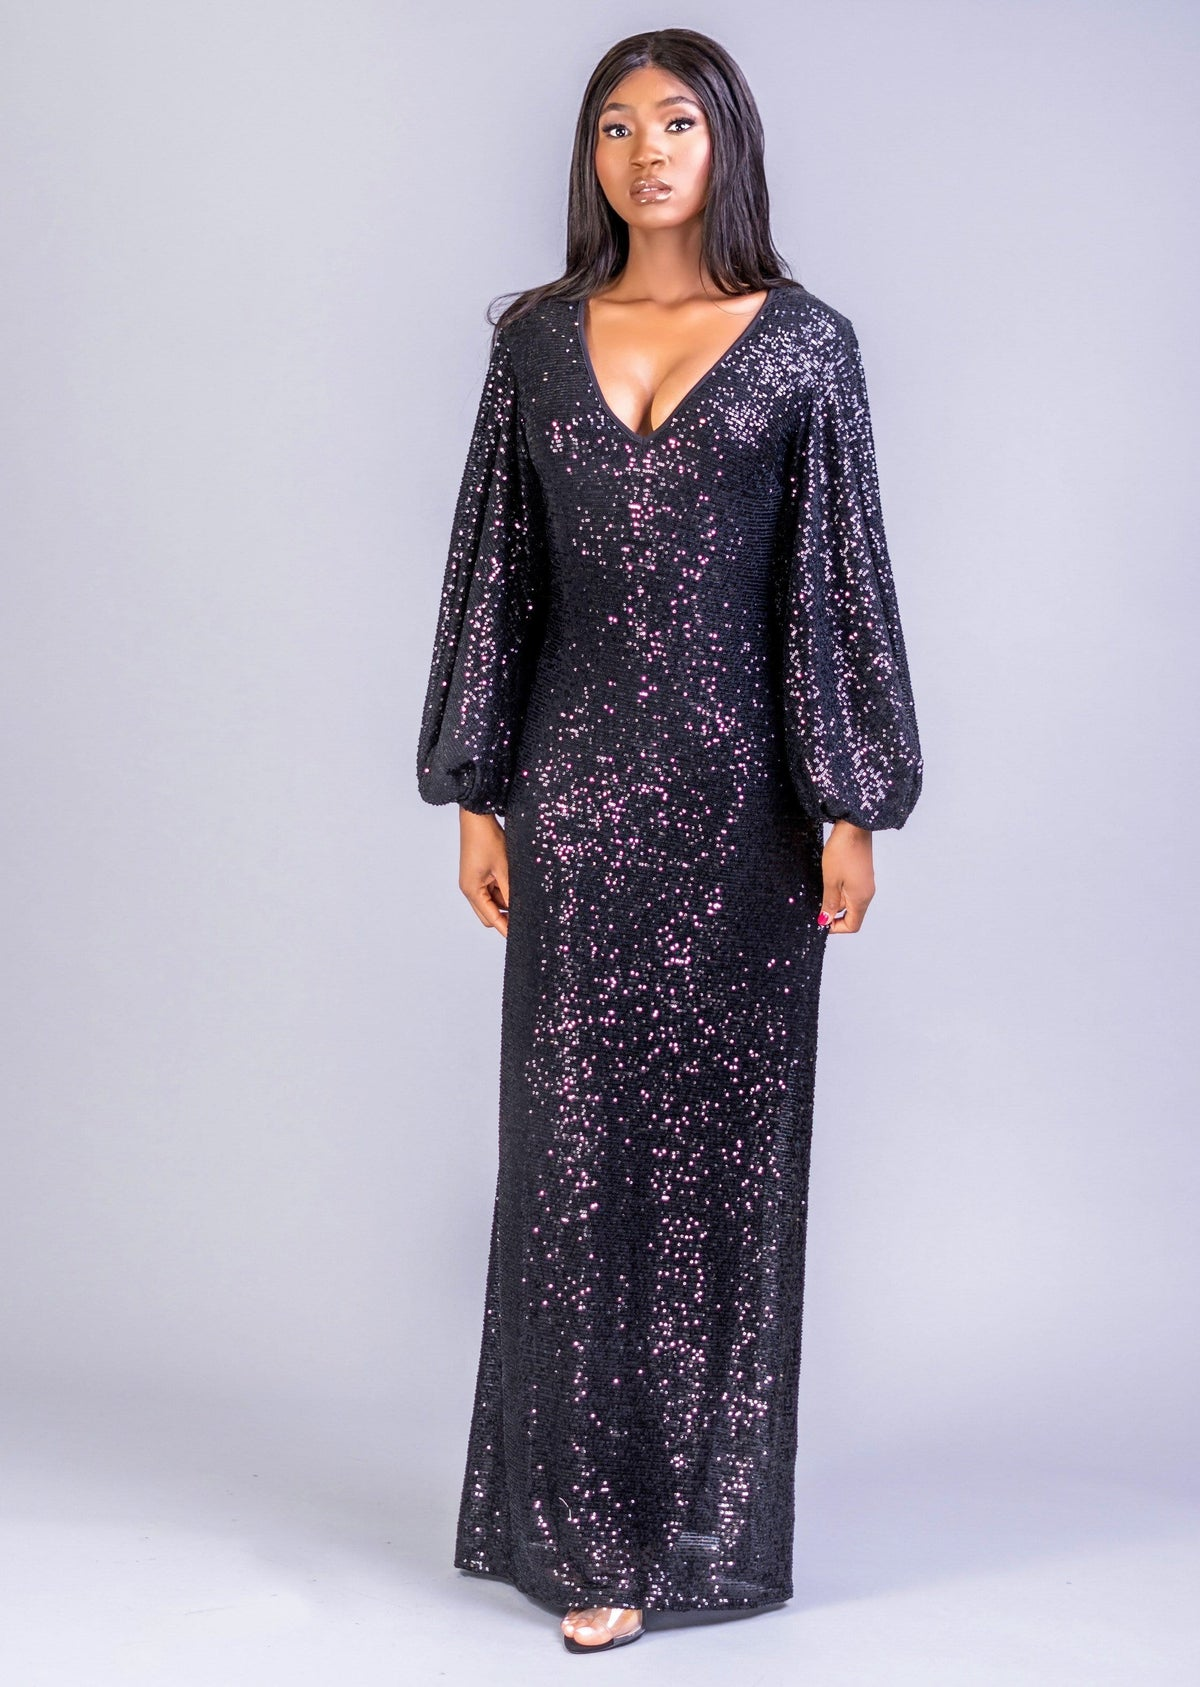 Muna Royal Everything Sequins Dress